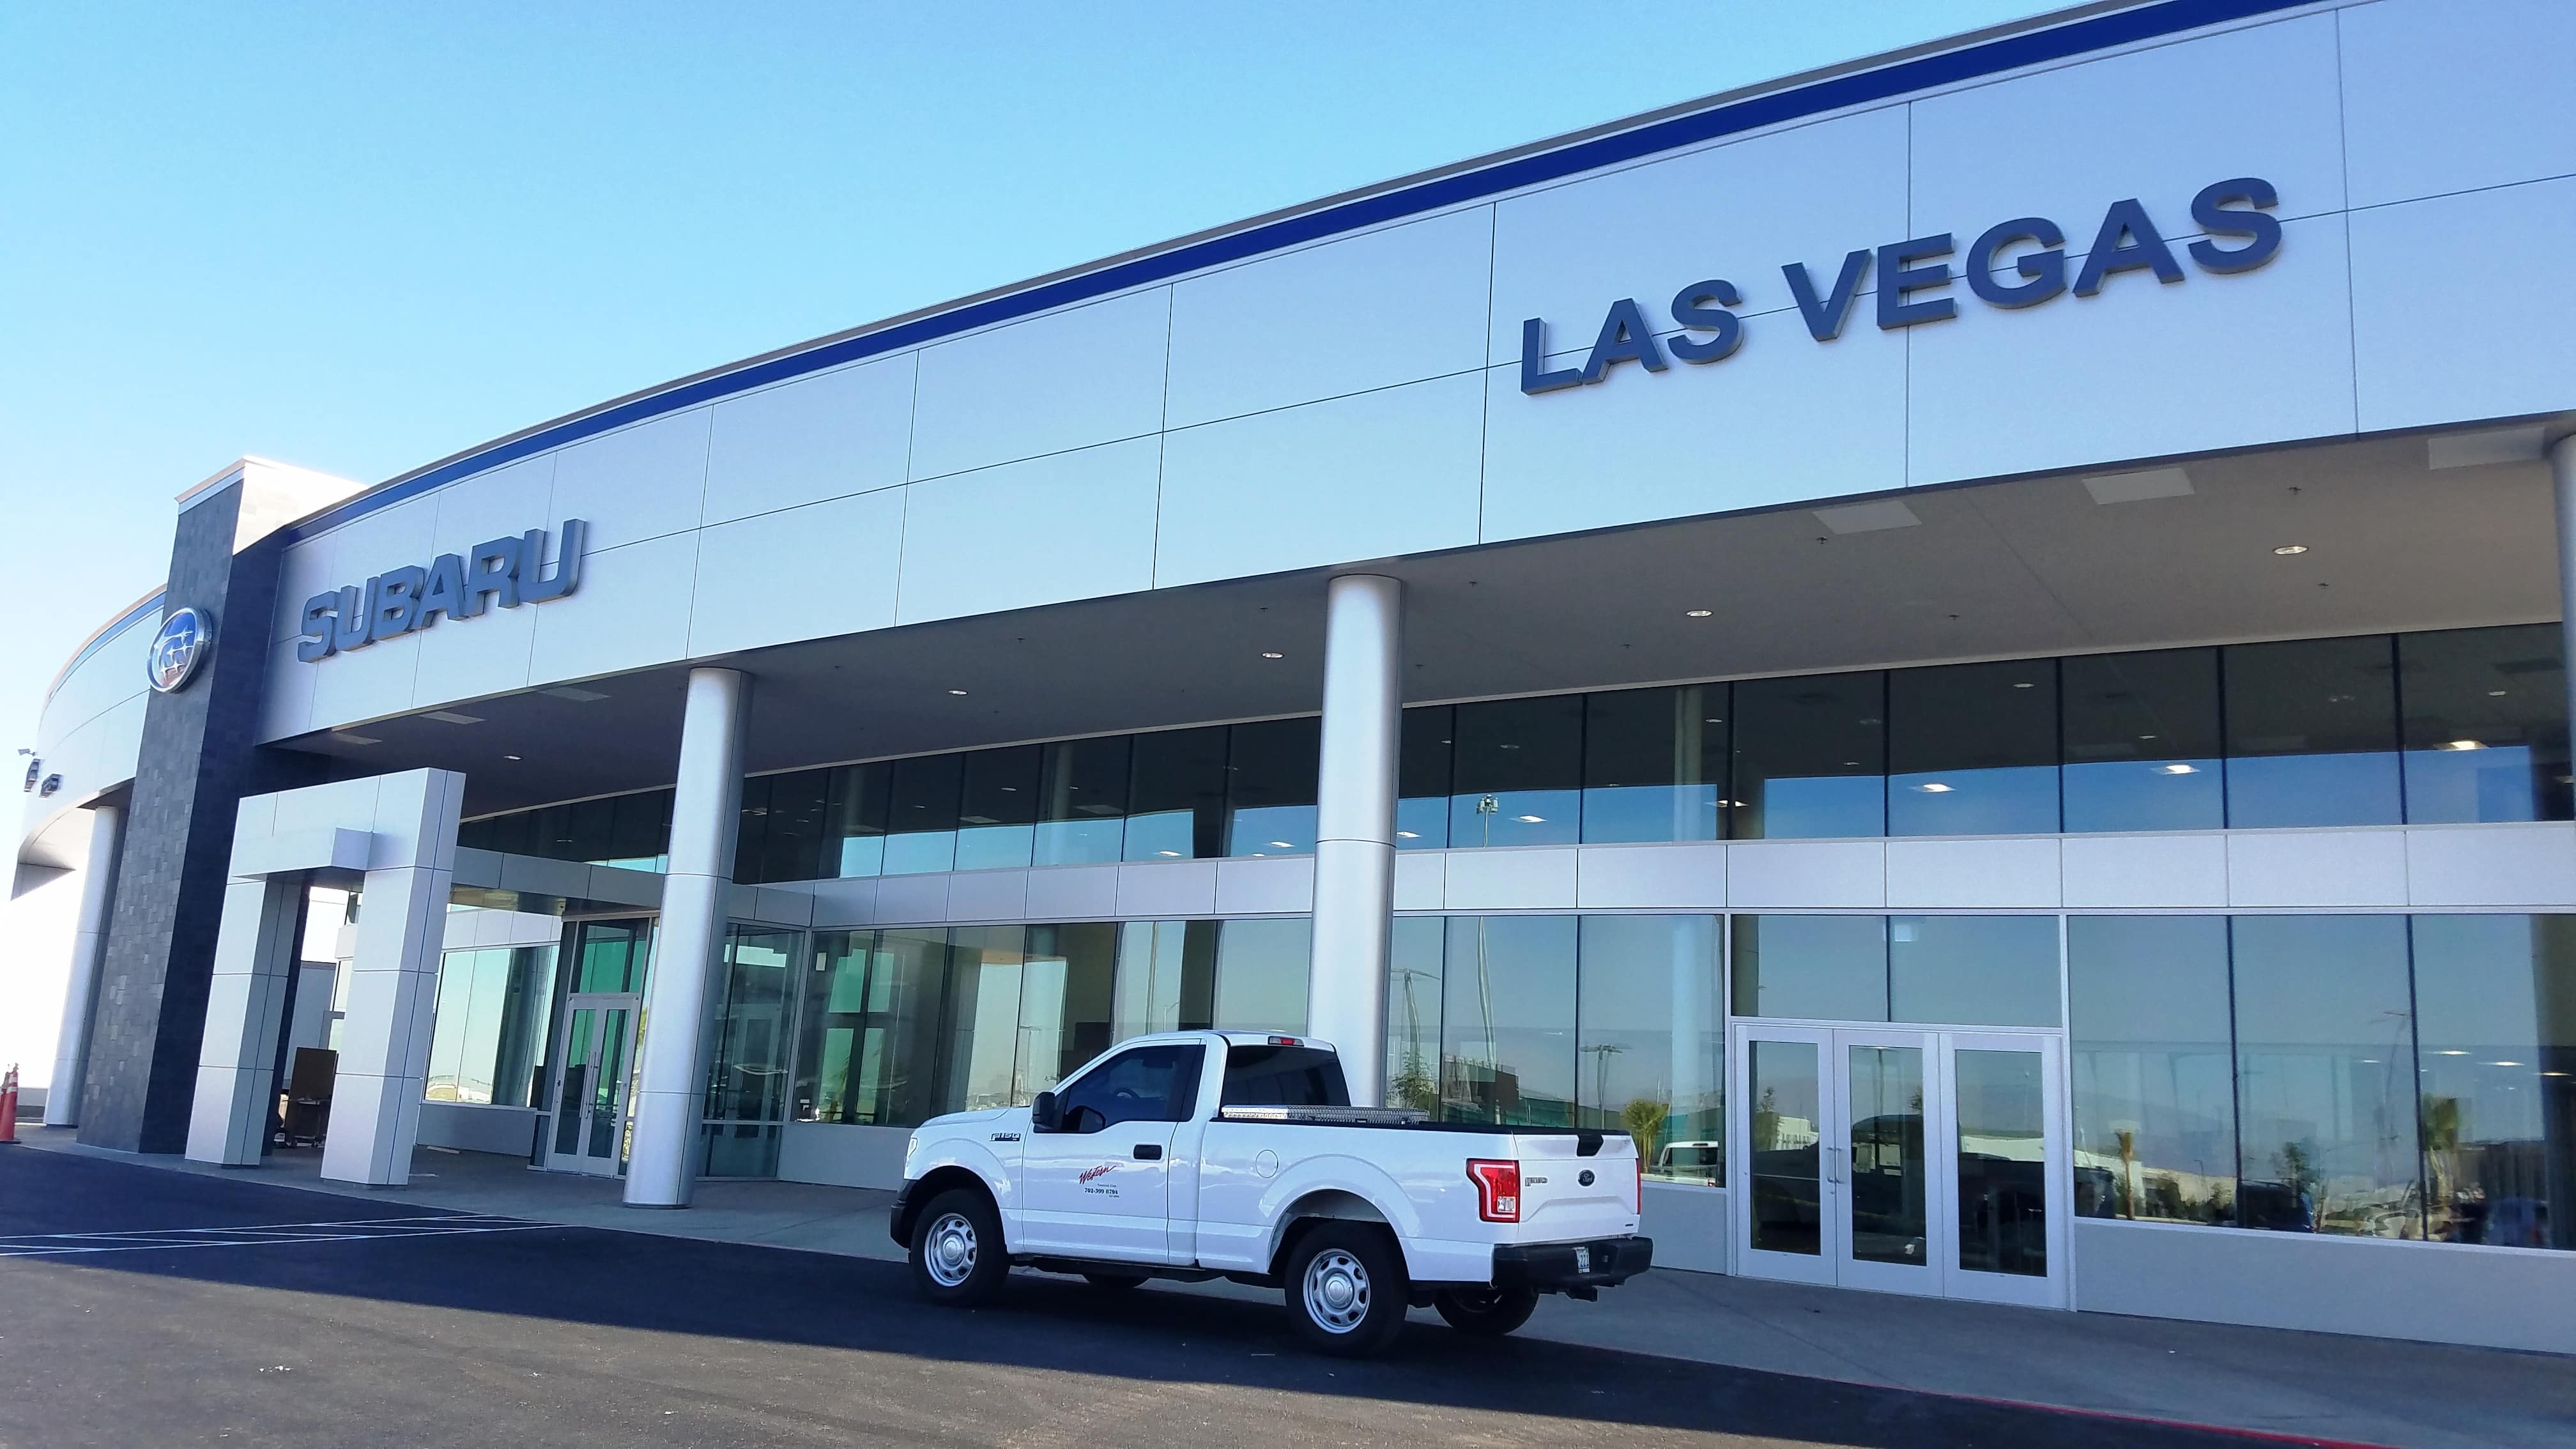 historic findlay dealership subaru of las vegas has moved to new plex in southwest valley